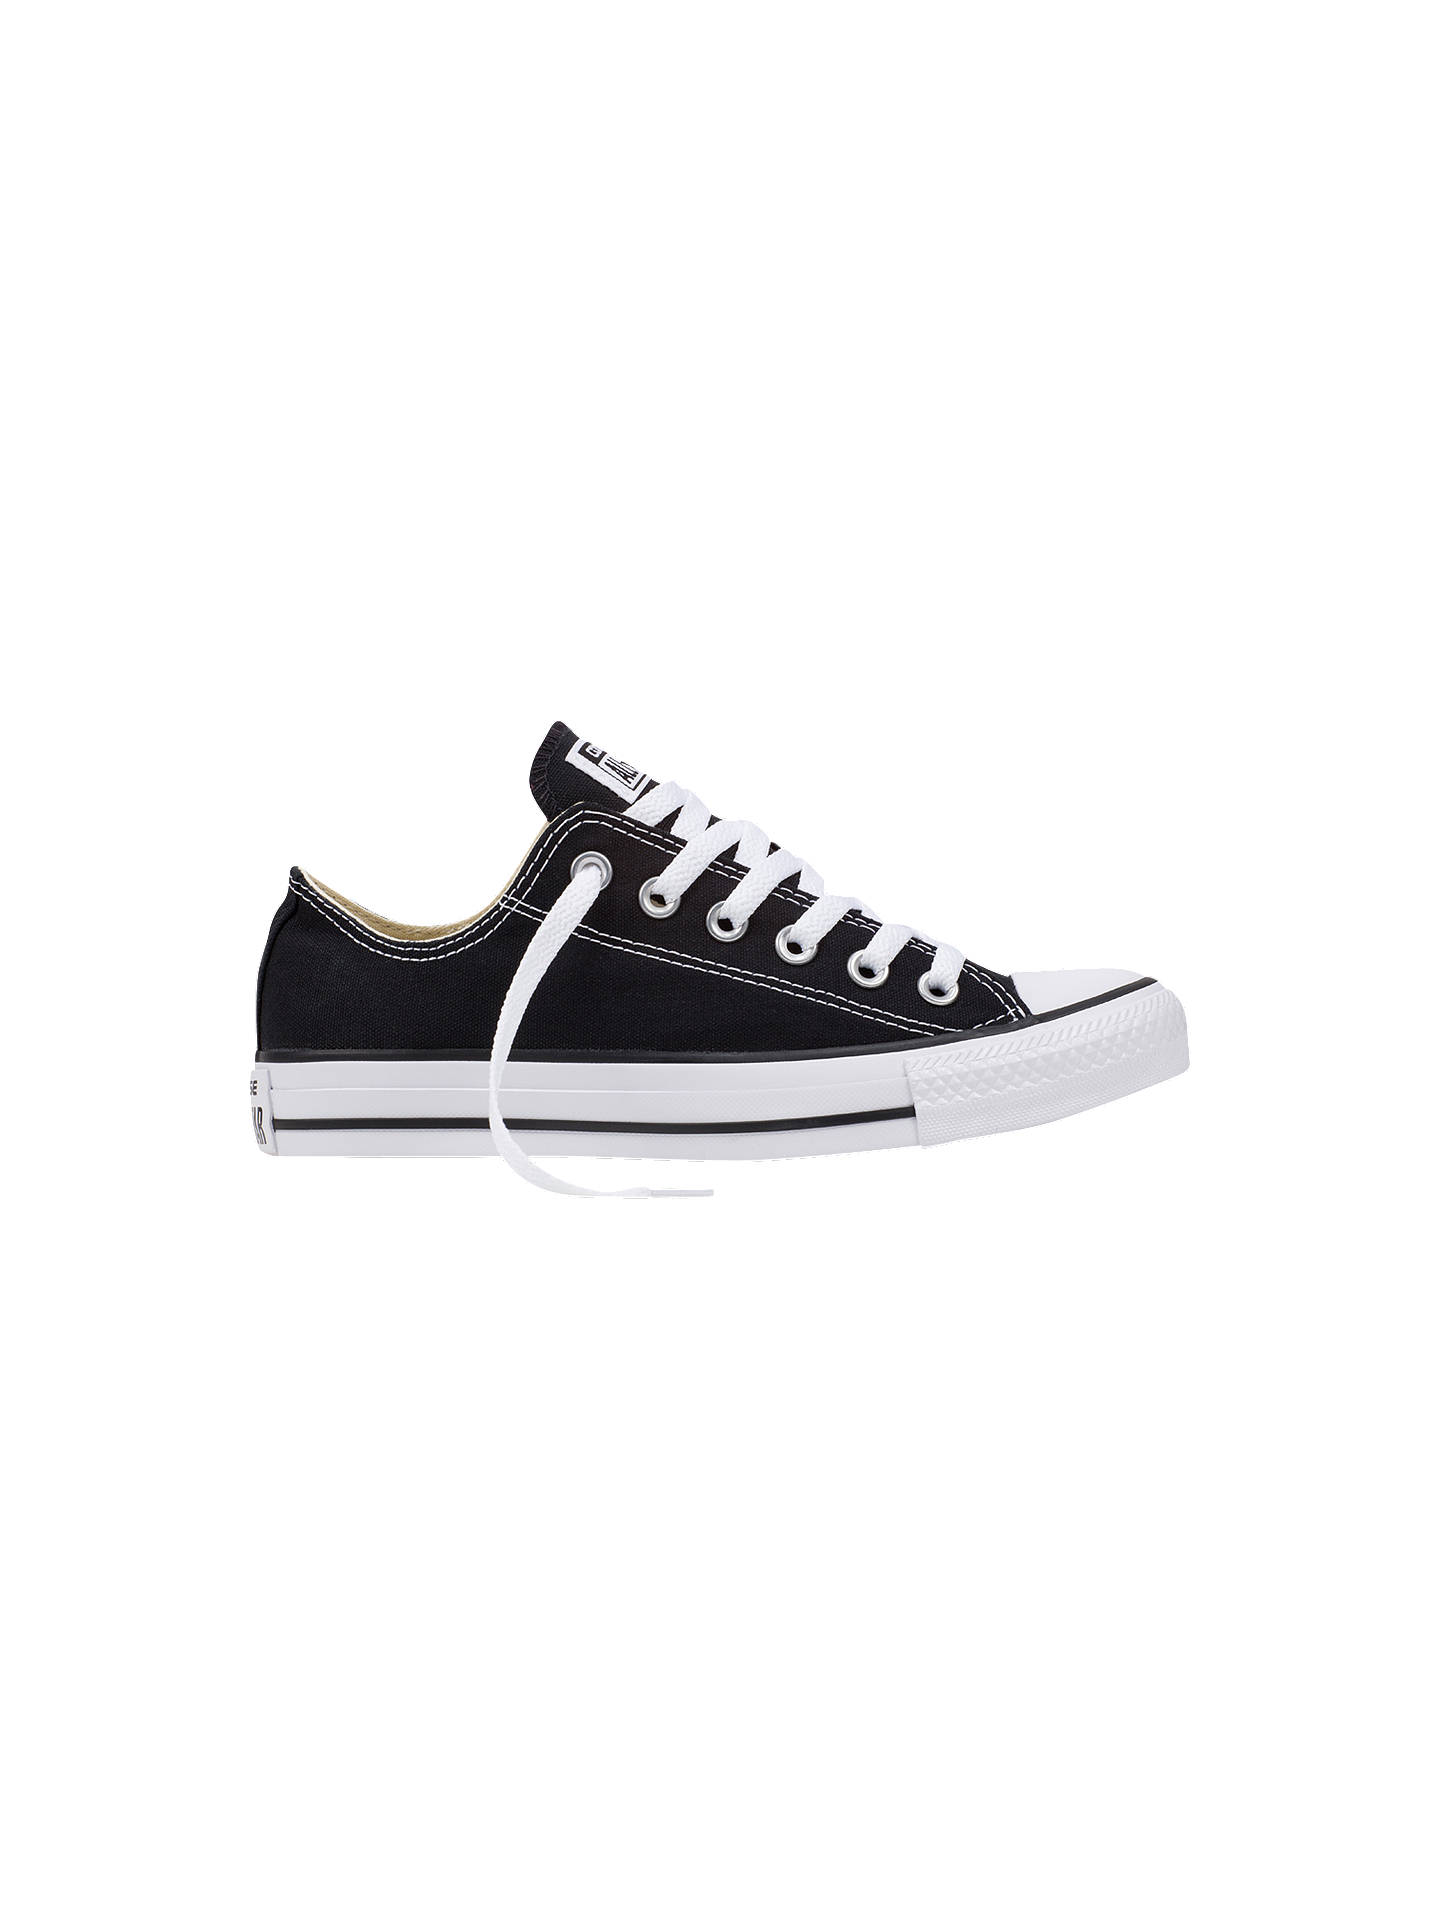 Converse Chuck Taylor All Star Ox Trainers at John Lewis   Partners 40a575b7f